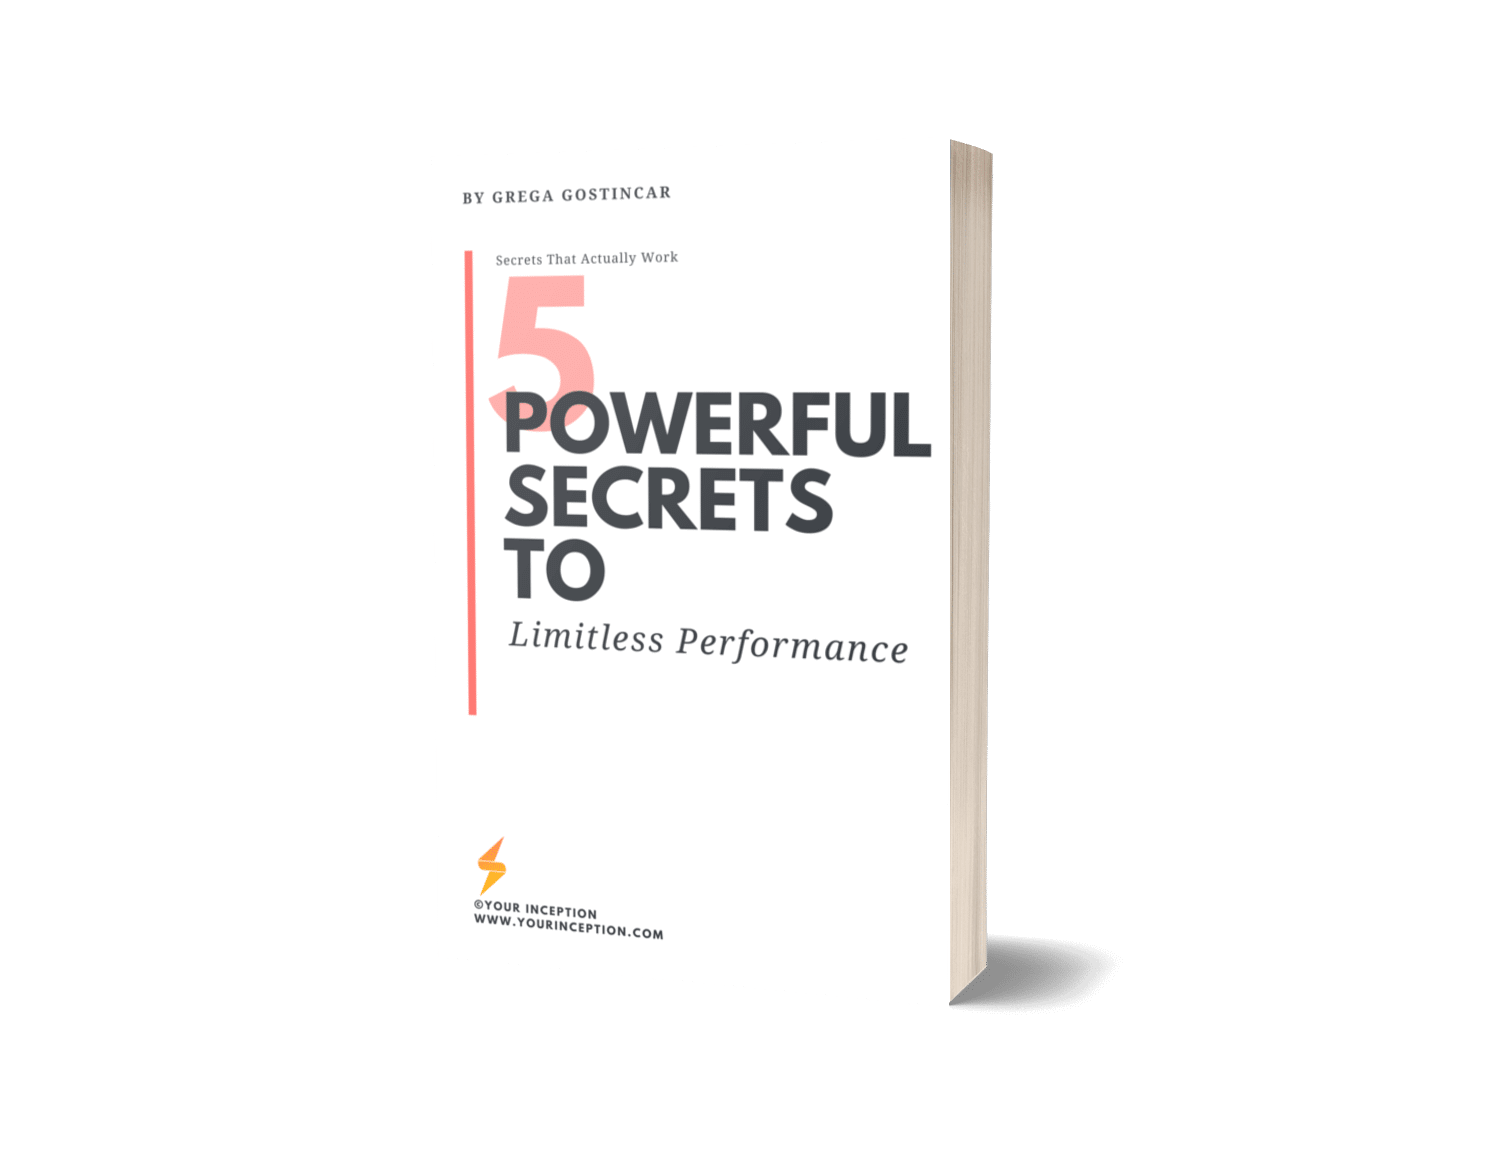 5 powerful secrets